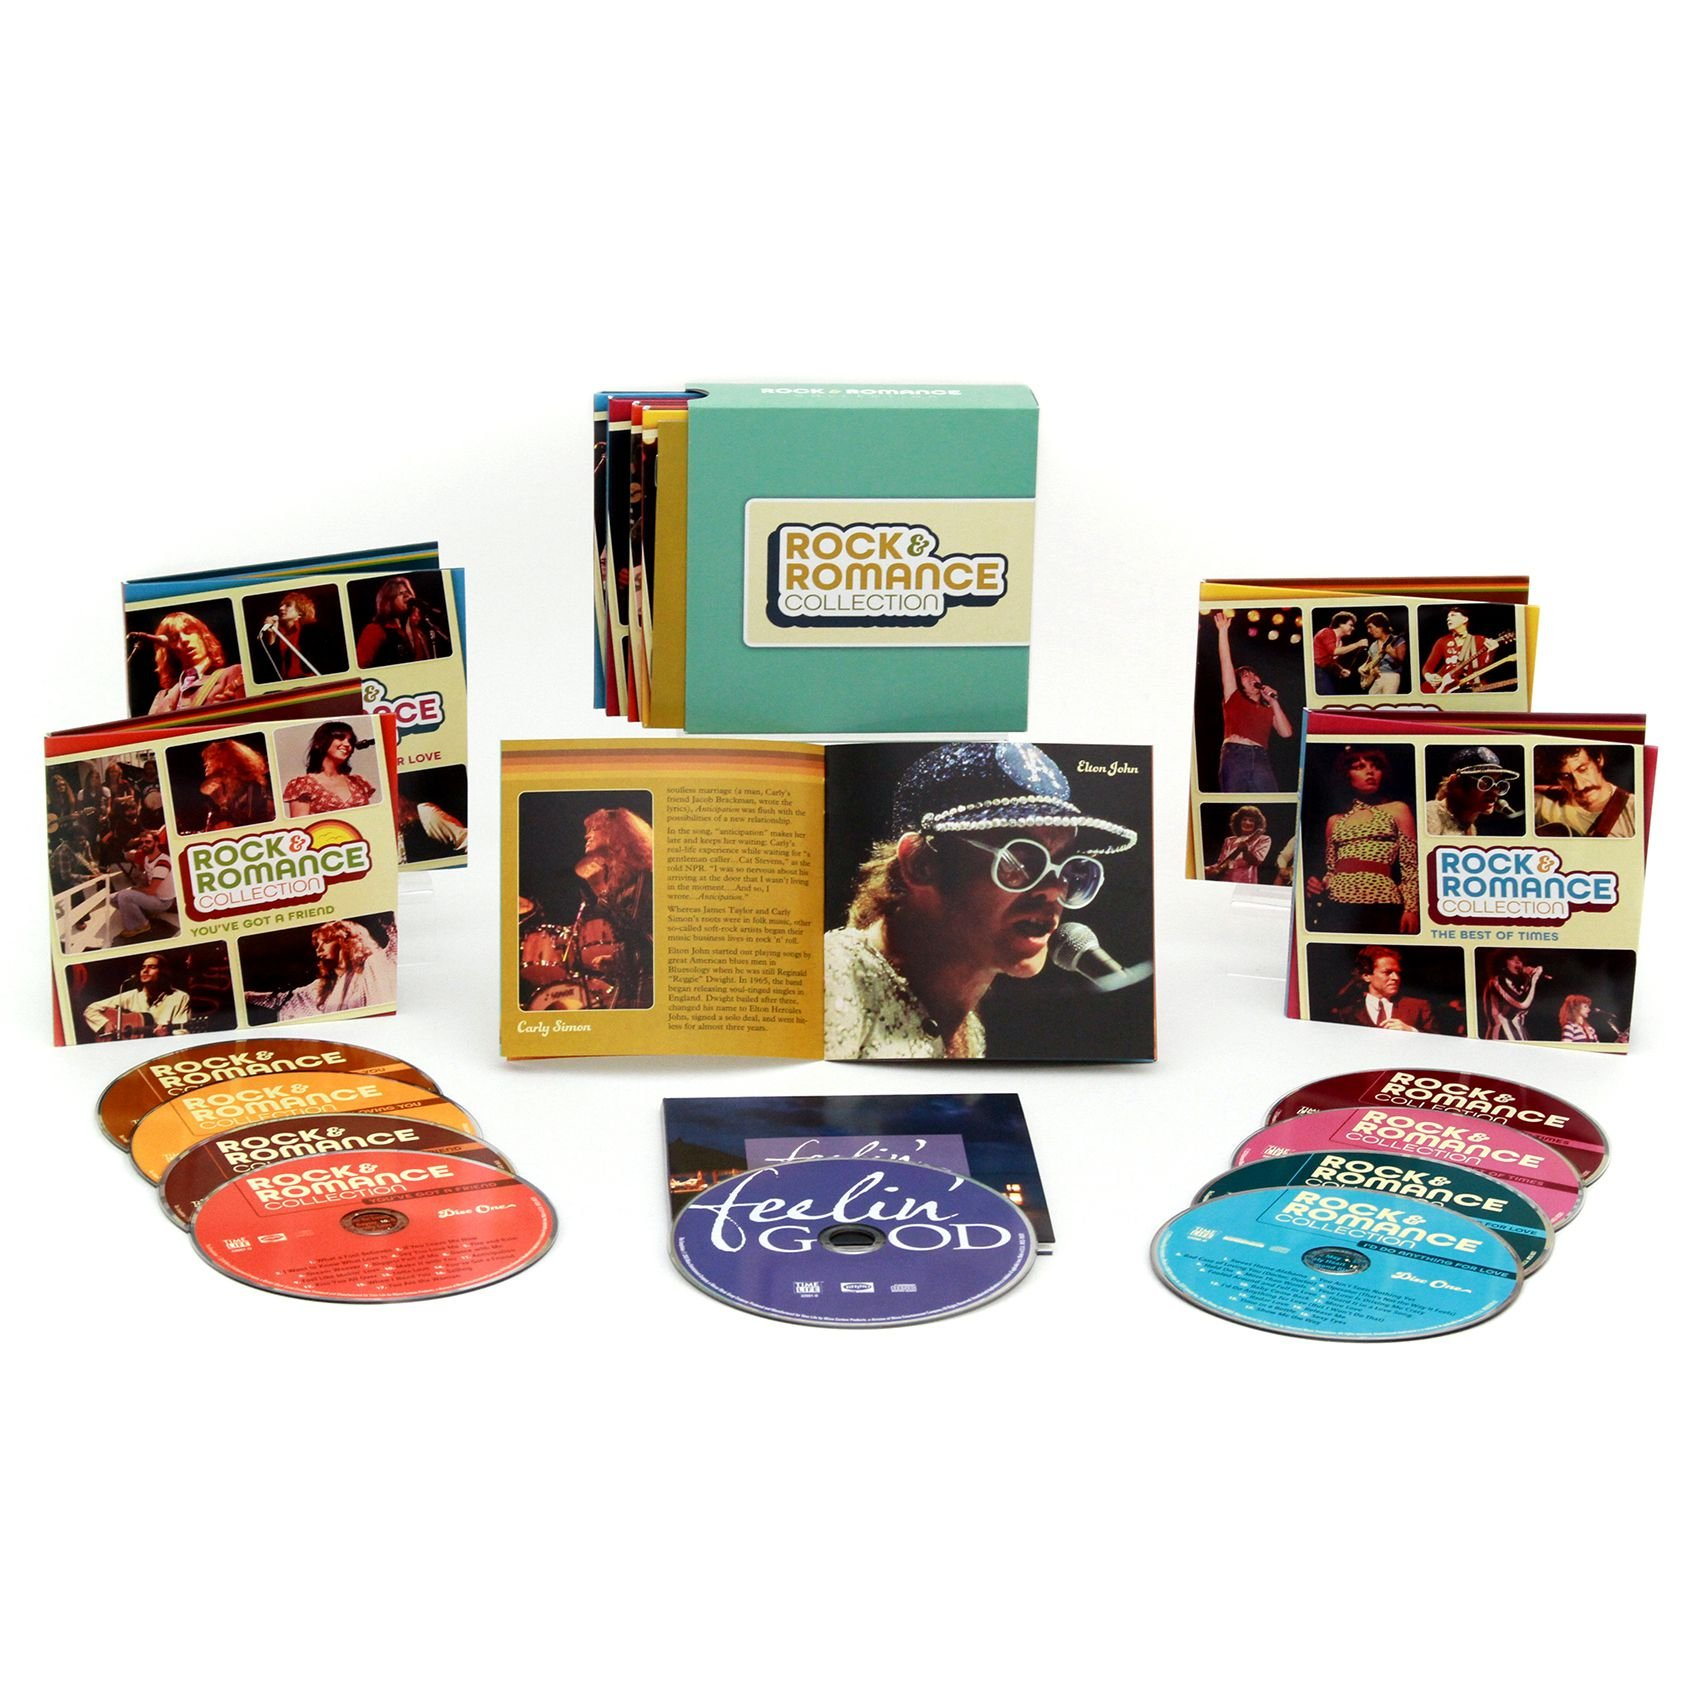 Rock & Romance Collection - 154 Songs on 9 CDs